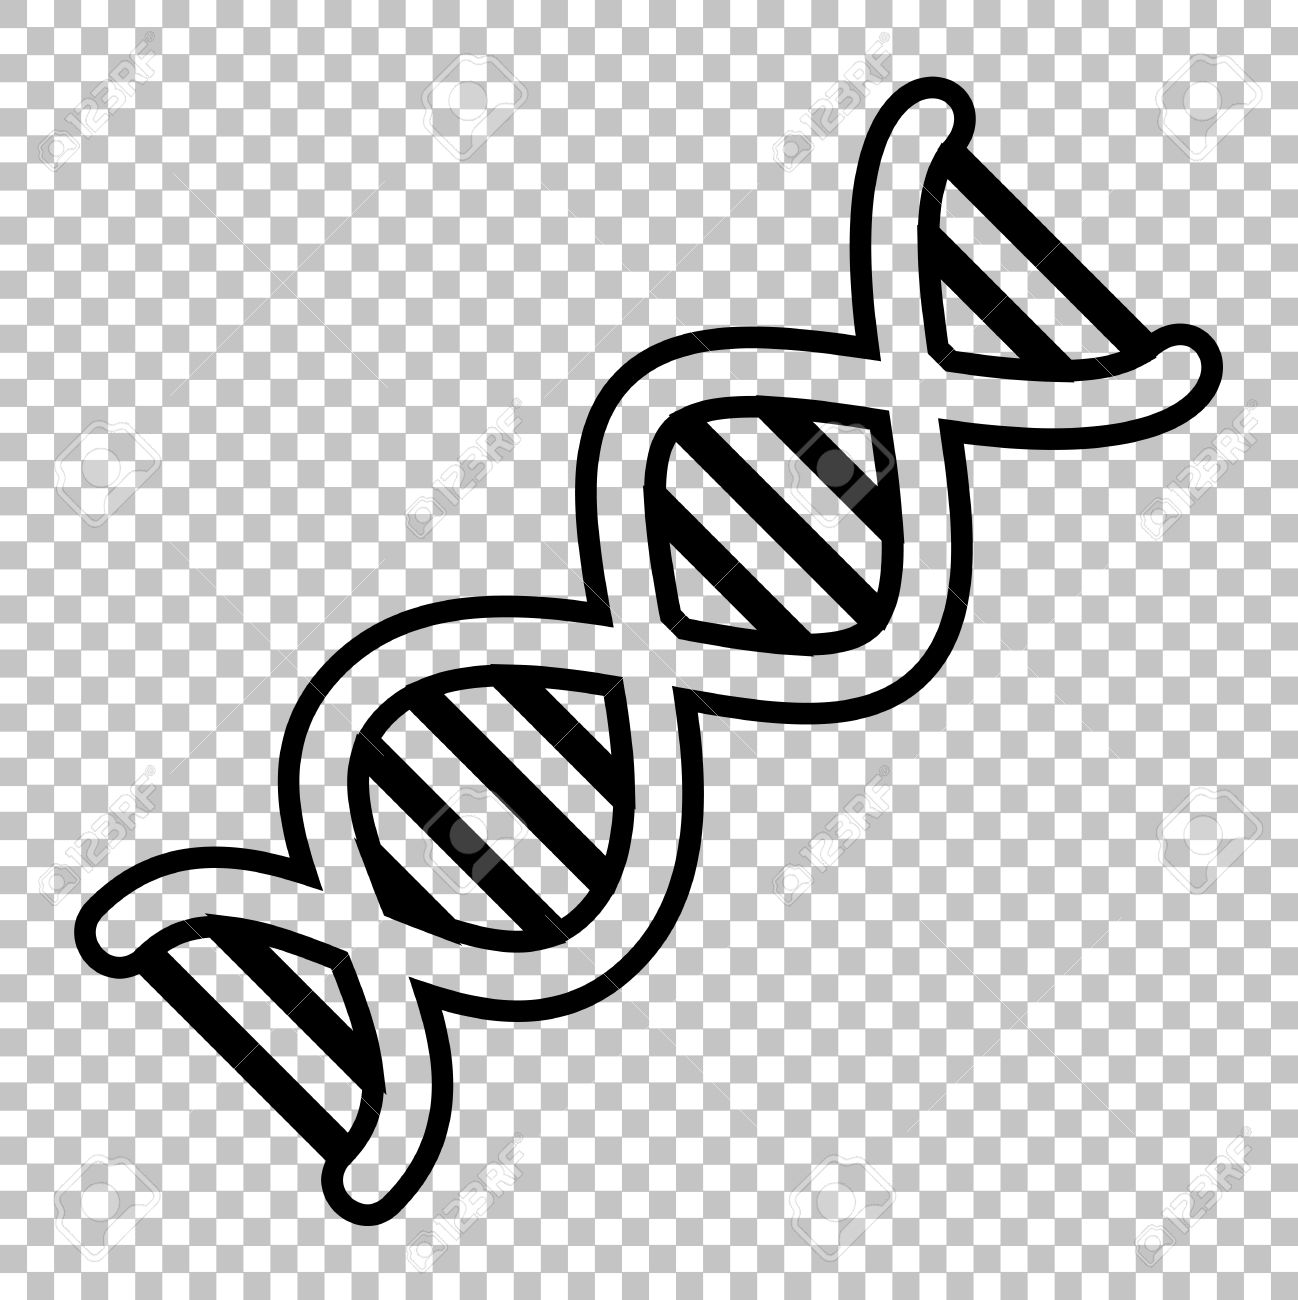 the dna sign. line icon on transparent background royalty free